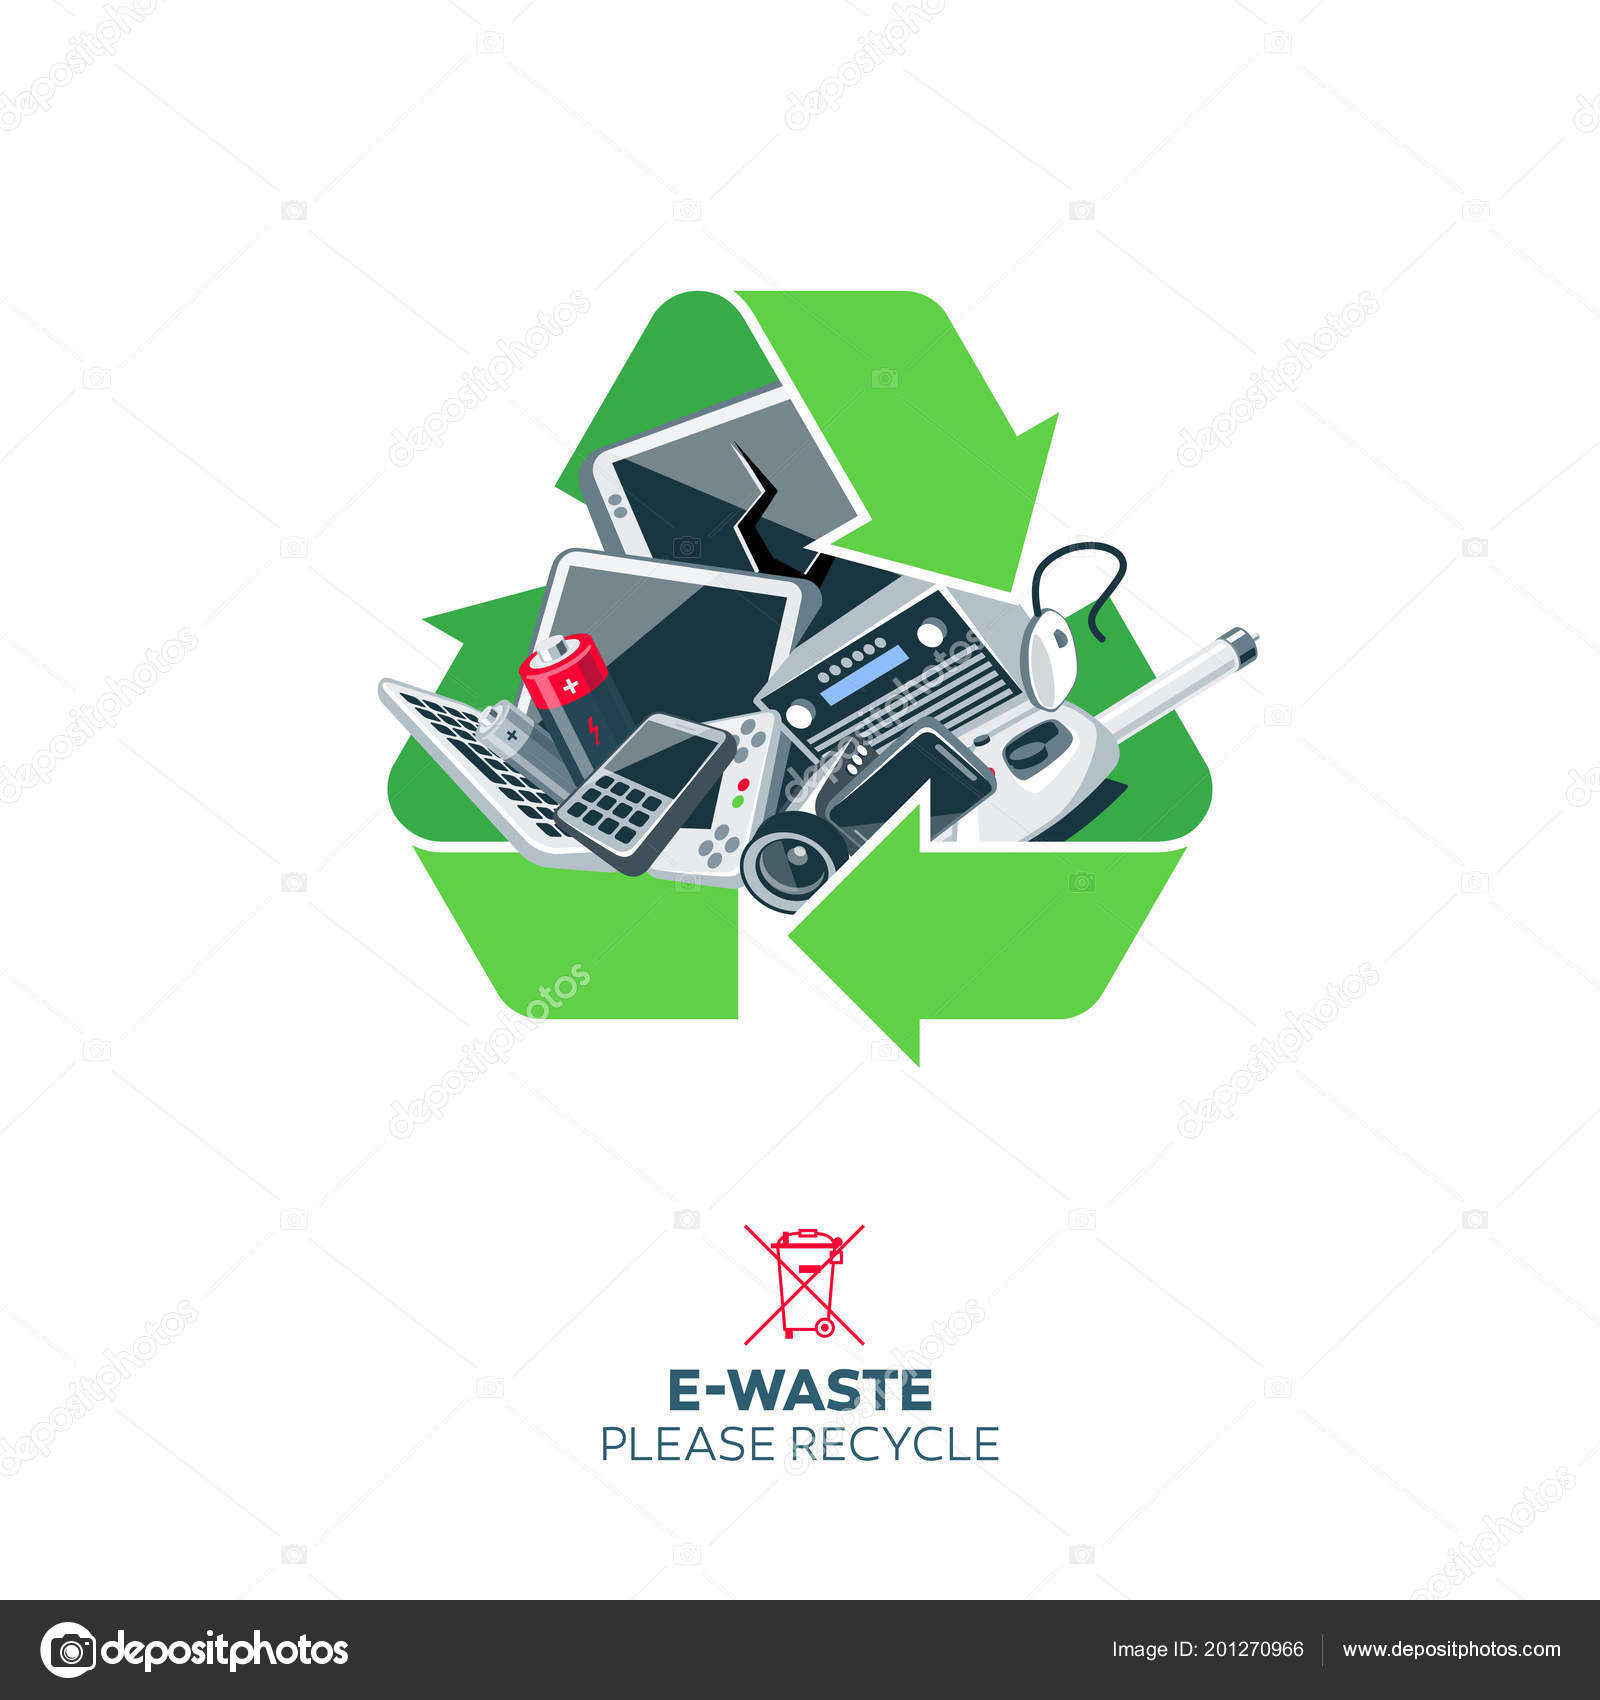 hight resolution of old discarded electronic waste inside green recycling symbol e waste concept illustration with electrical devices such as computer monitor cell phone